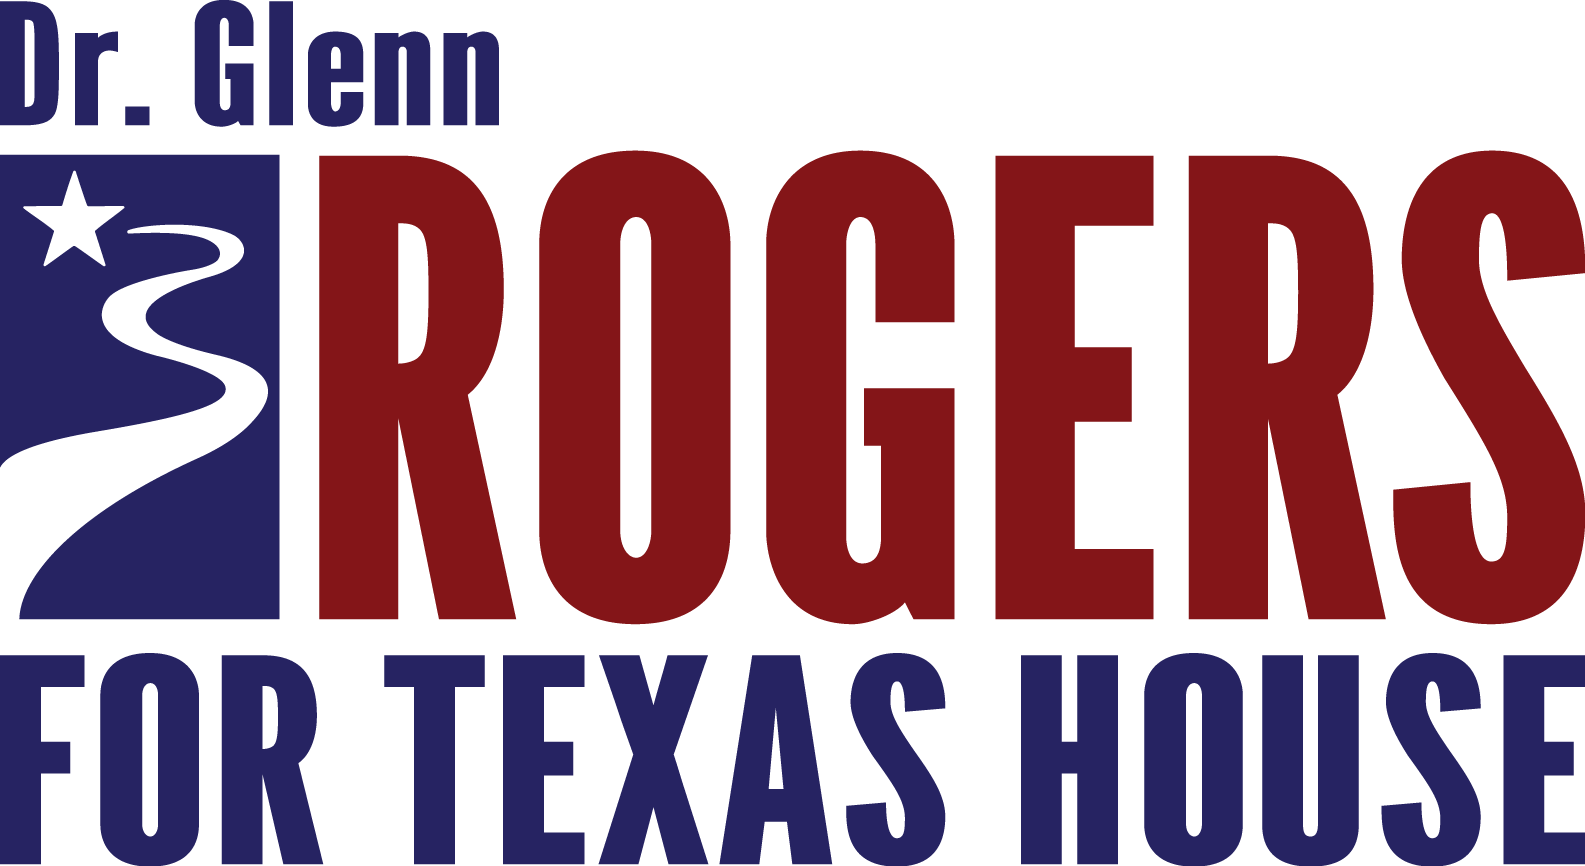 Glenn Rogers for State Representative